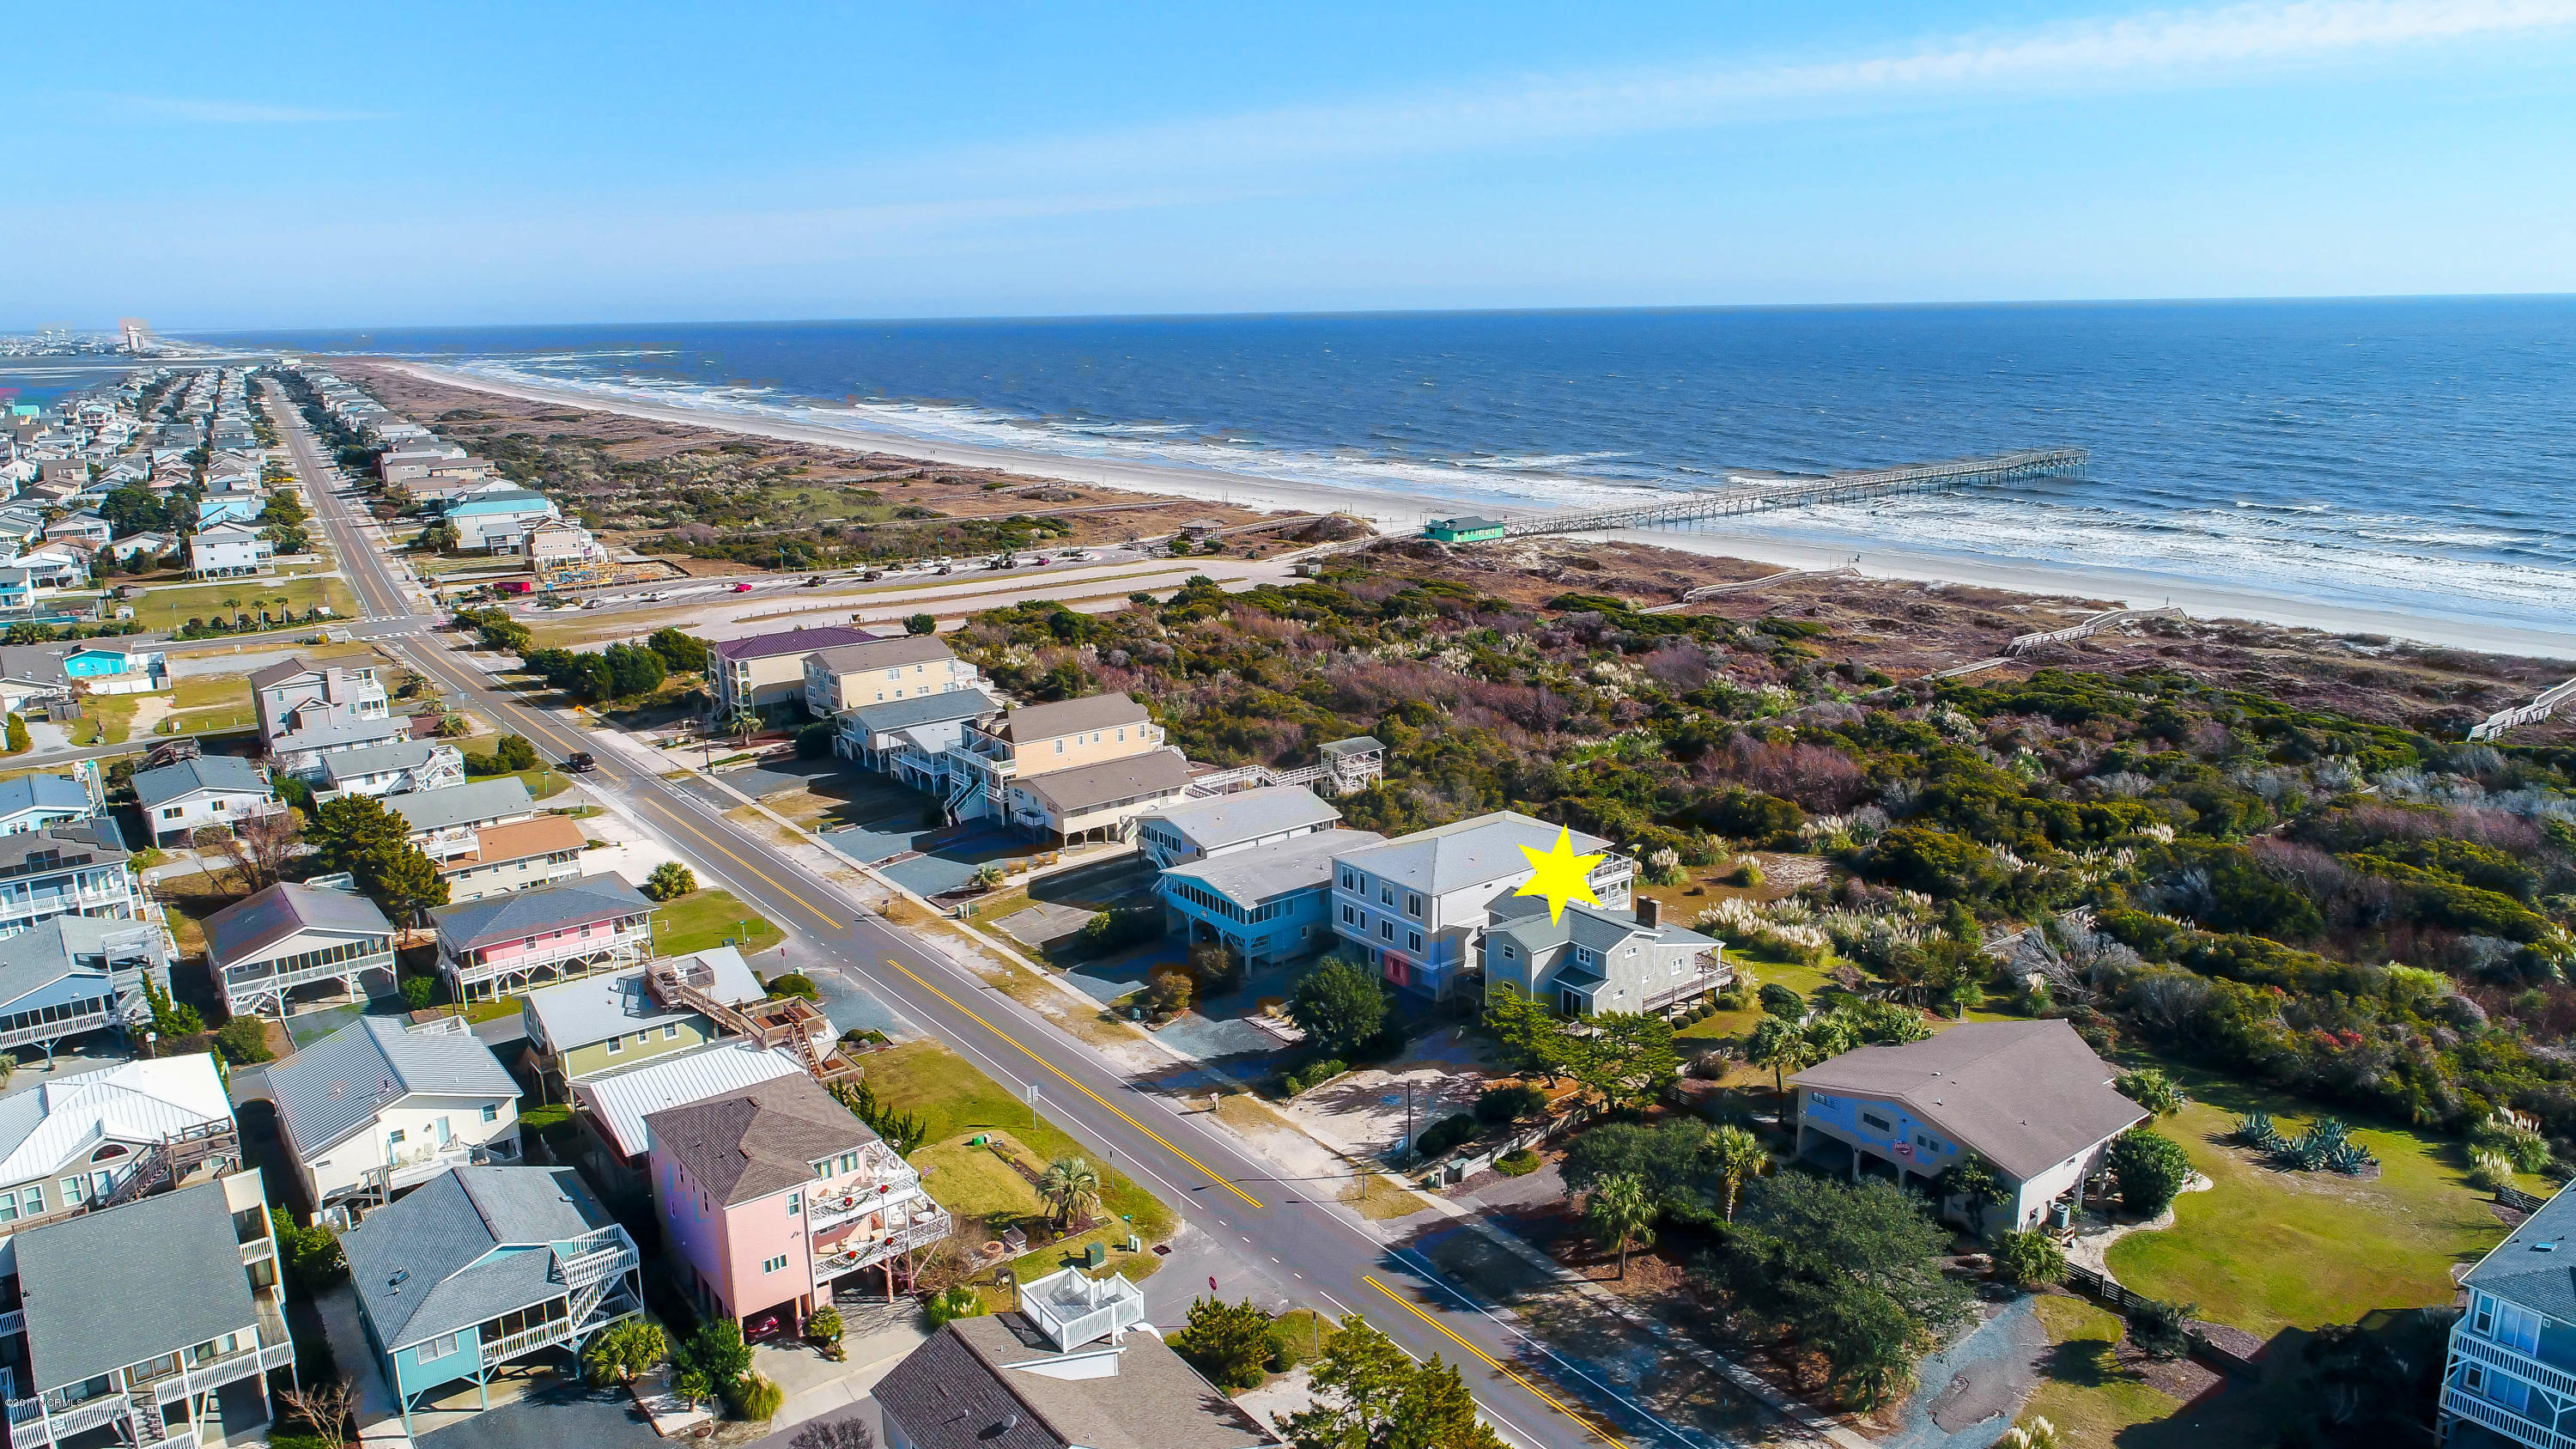 307 Main Street, Sunset Beach, North Carolina 28468, 4 Bedrooms Bedrooms, 7 Rooms Rooms,4 BathroomsBathrooms,Single family residence,For sale,Main,100184109